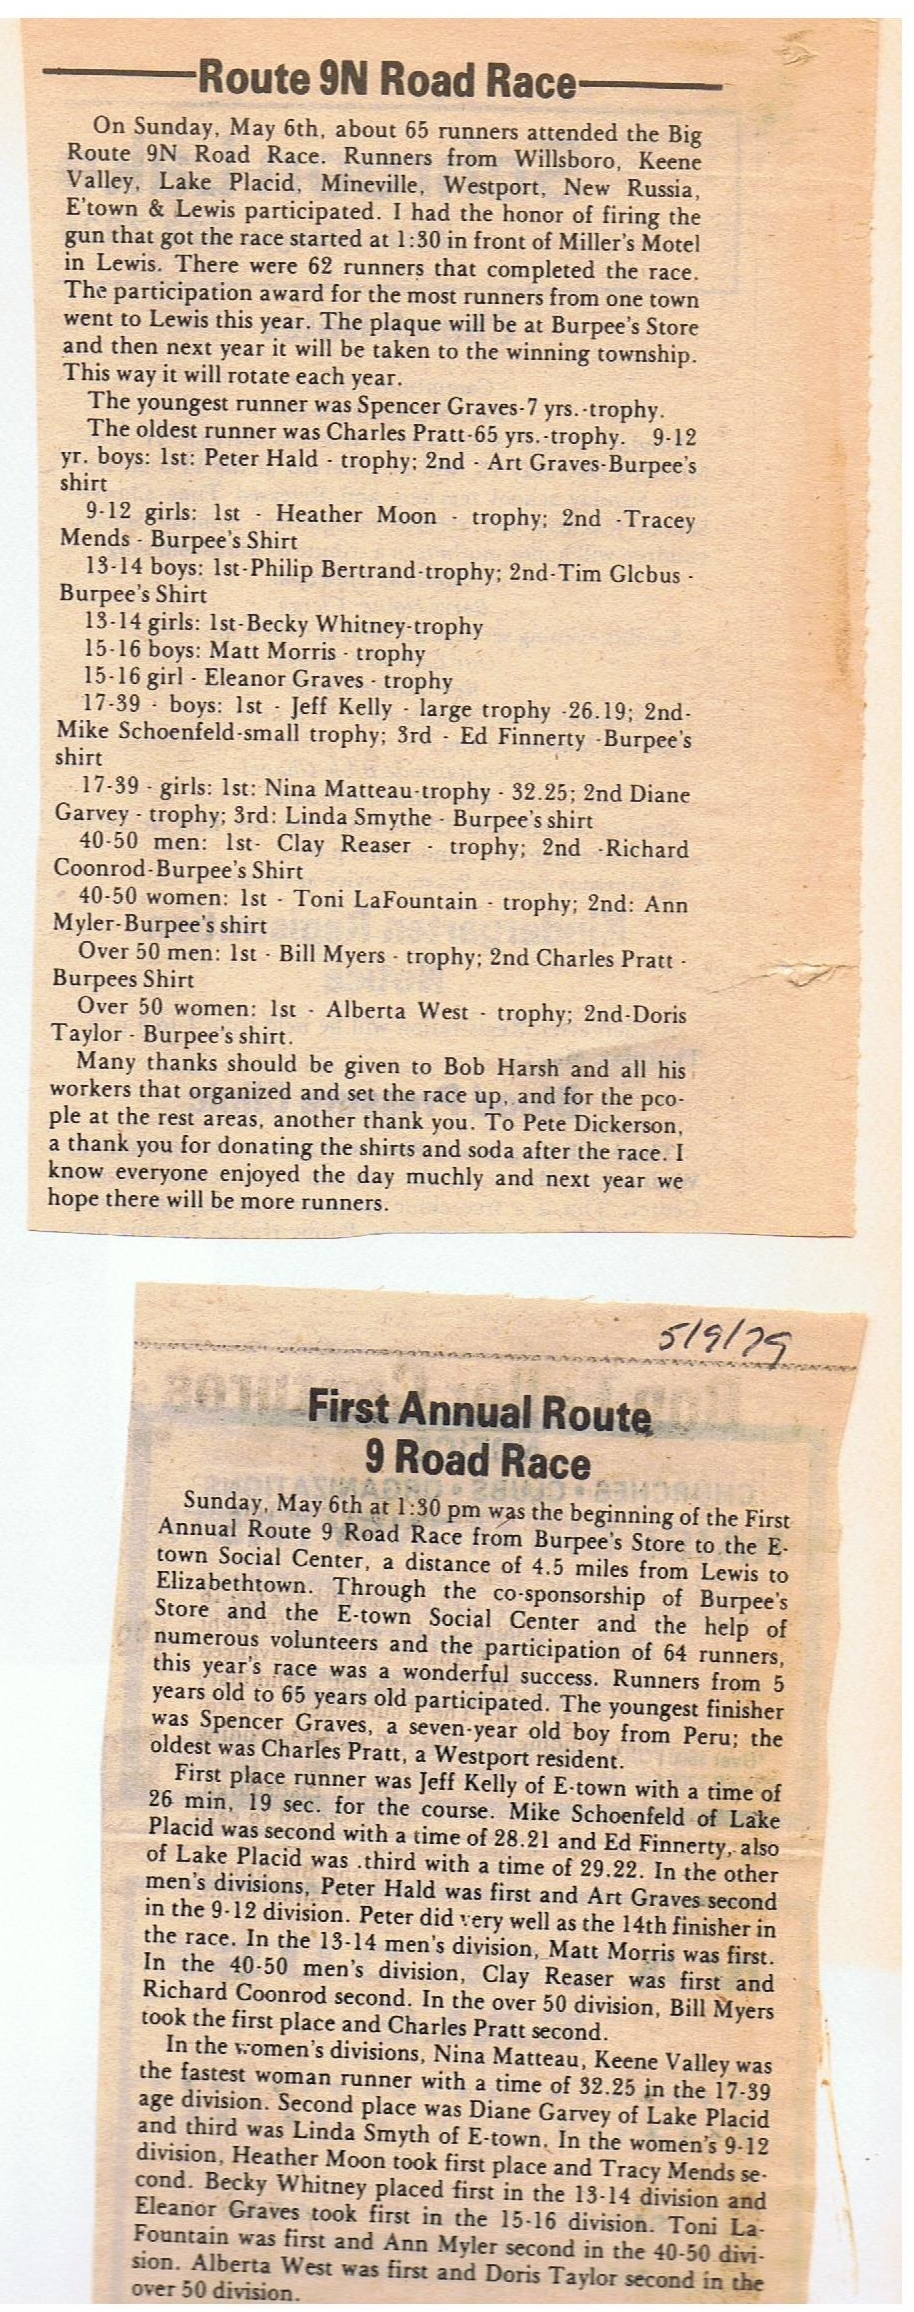 79 race newspaper articles